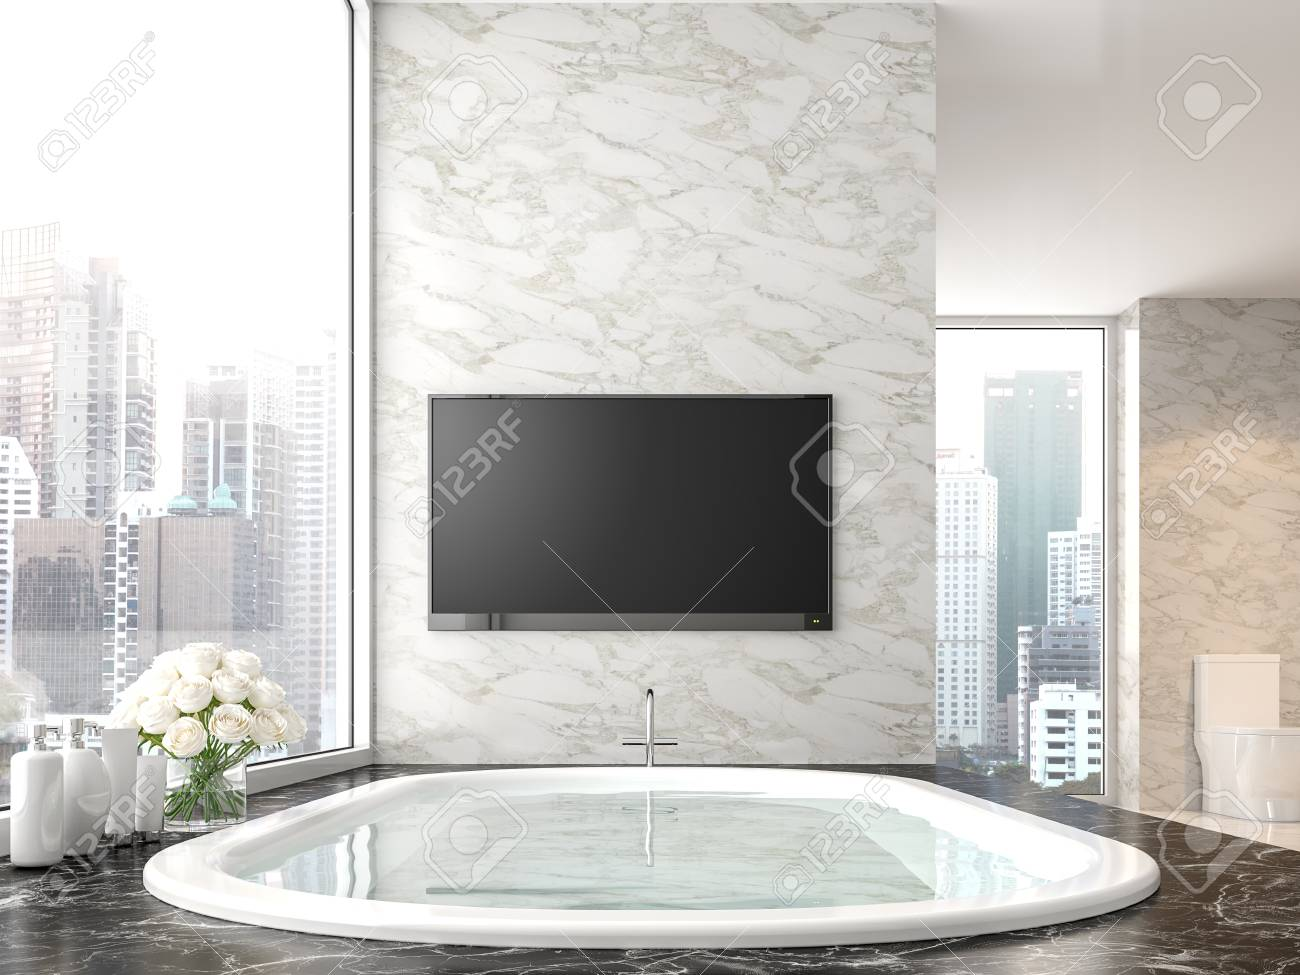 Luxury Bathroom With City View 3d Render There Are Black Marble Stock Photo Picture And Royalty Free Image Image 109610432